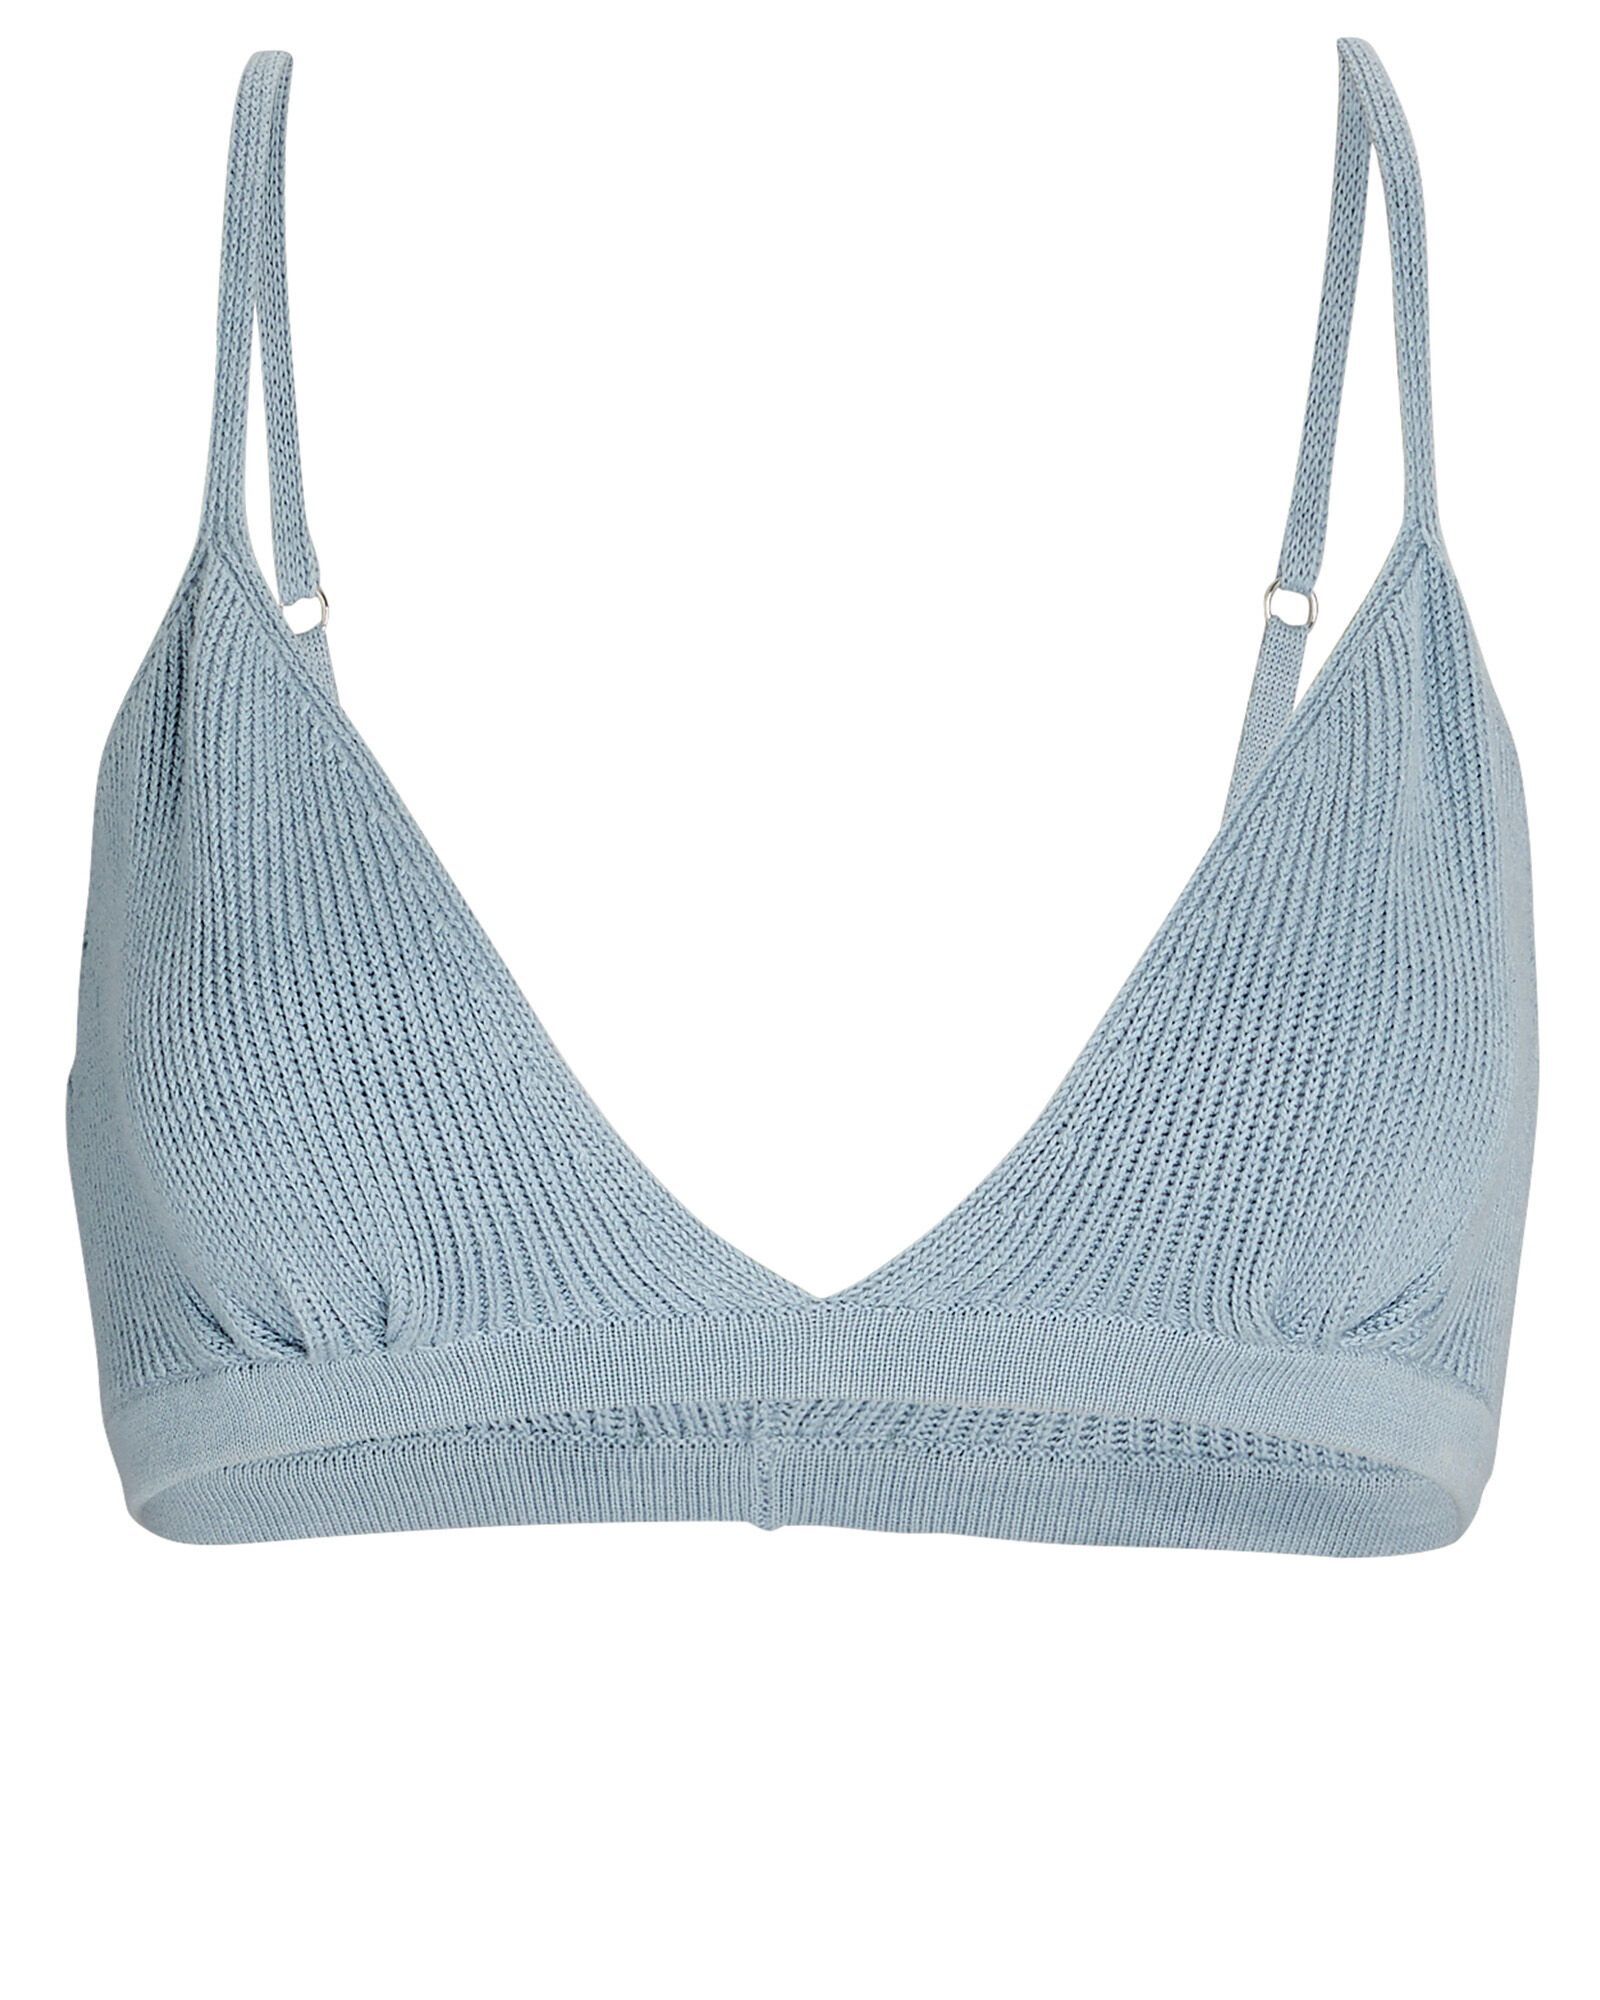 Danica Cotton-Silk Knit Bralette, BLUE-LT, hi-res